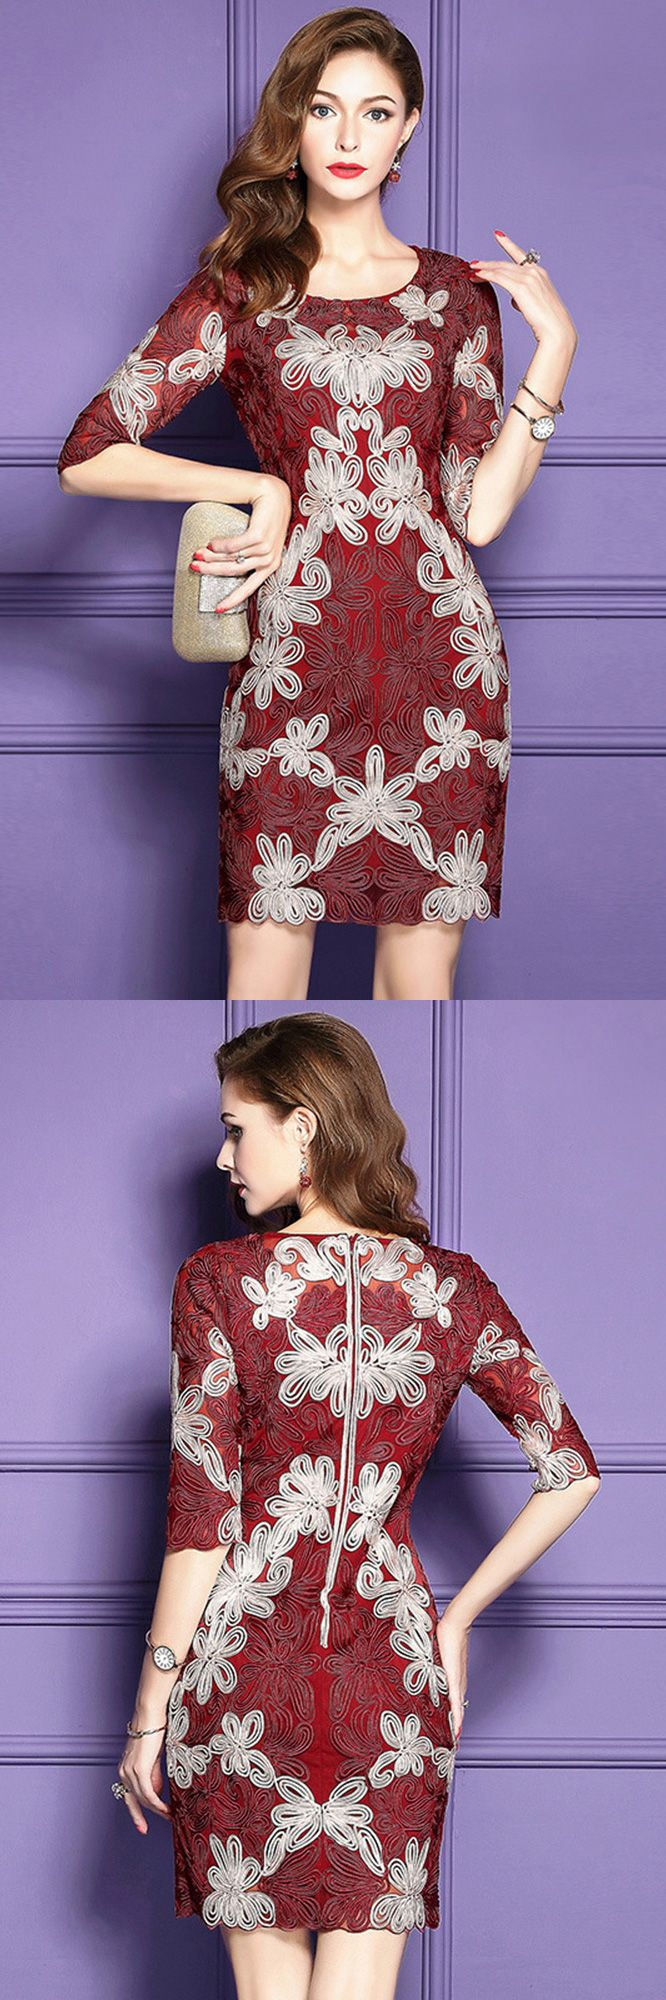 Dresses to wear to a wedding as a guest over 50  Embroidered Pattern Cocktail Dresses For Women Over  With High